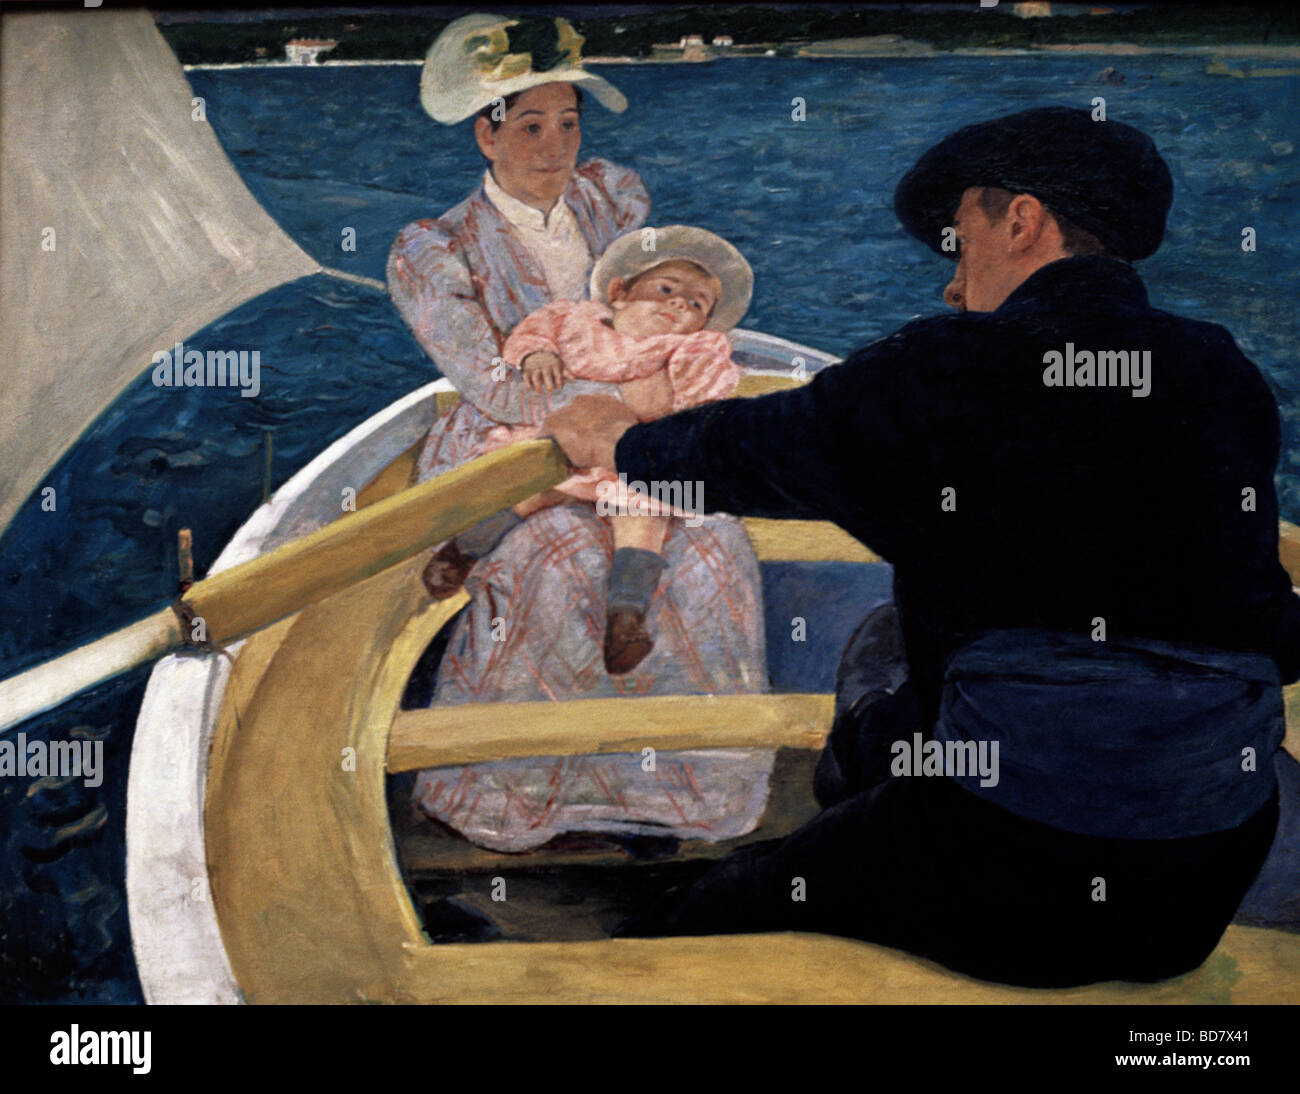 "Belle arti, Cassatt Mary, (1844 - 1926), pittura, 'viaggio in barca"", olio su tela, 90 x 188 cm, 1893, National Foto Stock"